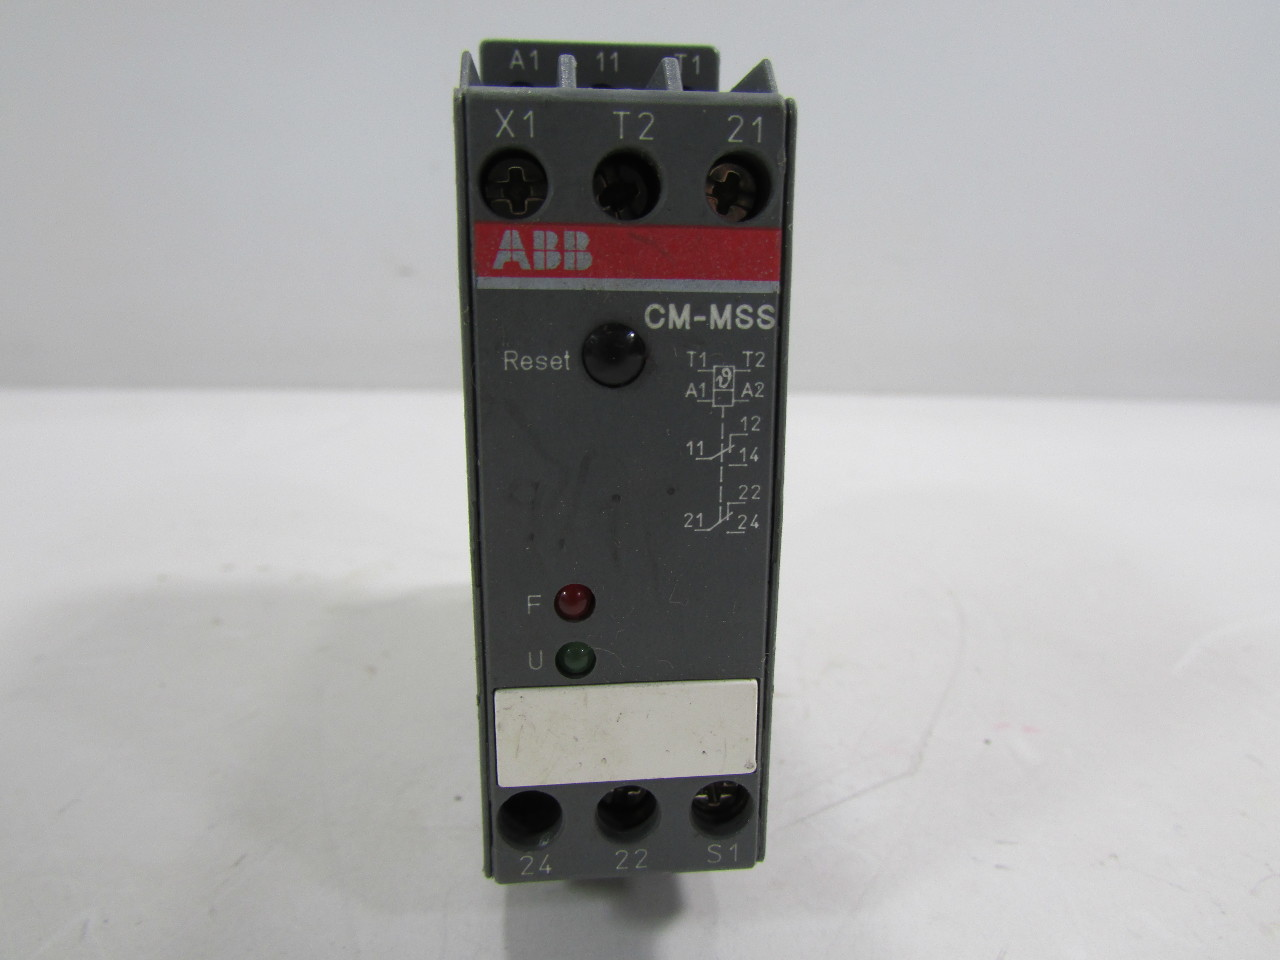 Abb cm mss 1svr430720r0300 motor protection monitoring for Thermistor motor protection relay